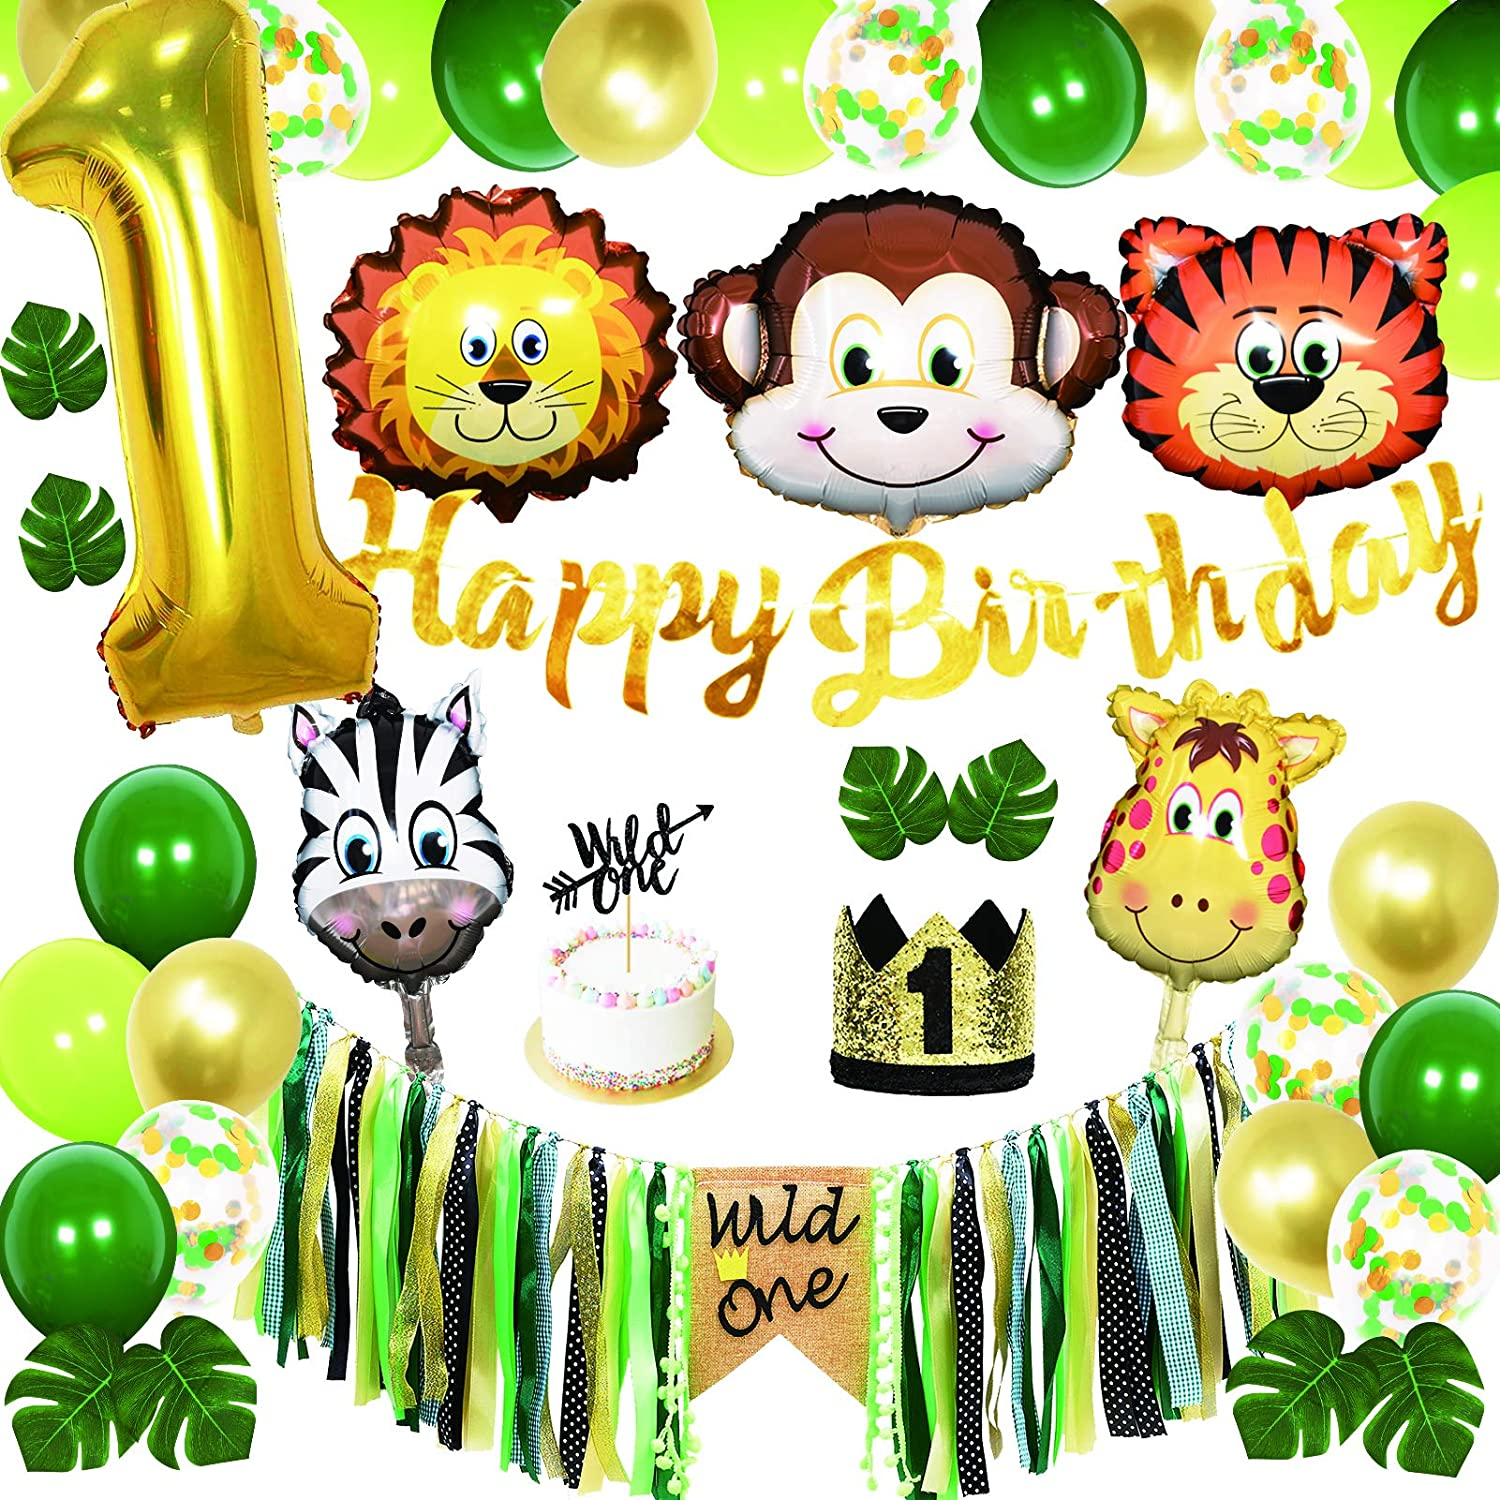 42Pcs for 1st Baby Birthday Party Decorations Set, Gender Neutral Woodland Animal Themed Party Favors, Wild One Fun Jungle Party Decor Set for Boy or Girl, with Glitter Baby Crown, Forest Creatures Safari for Baby First Birthday Celebration